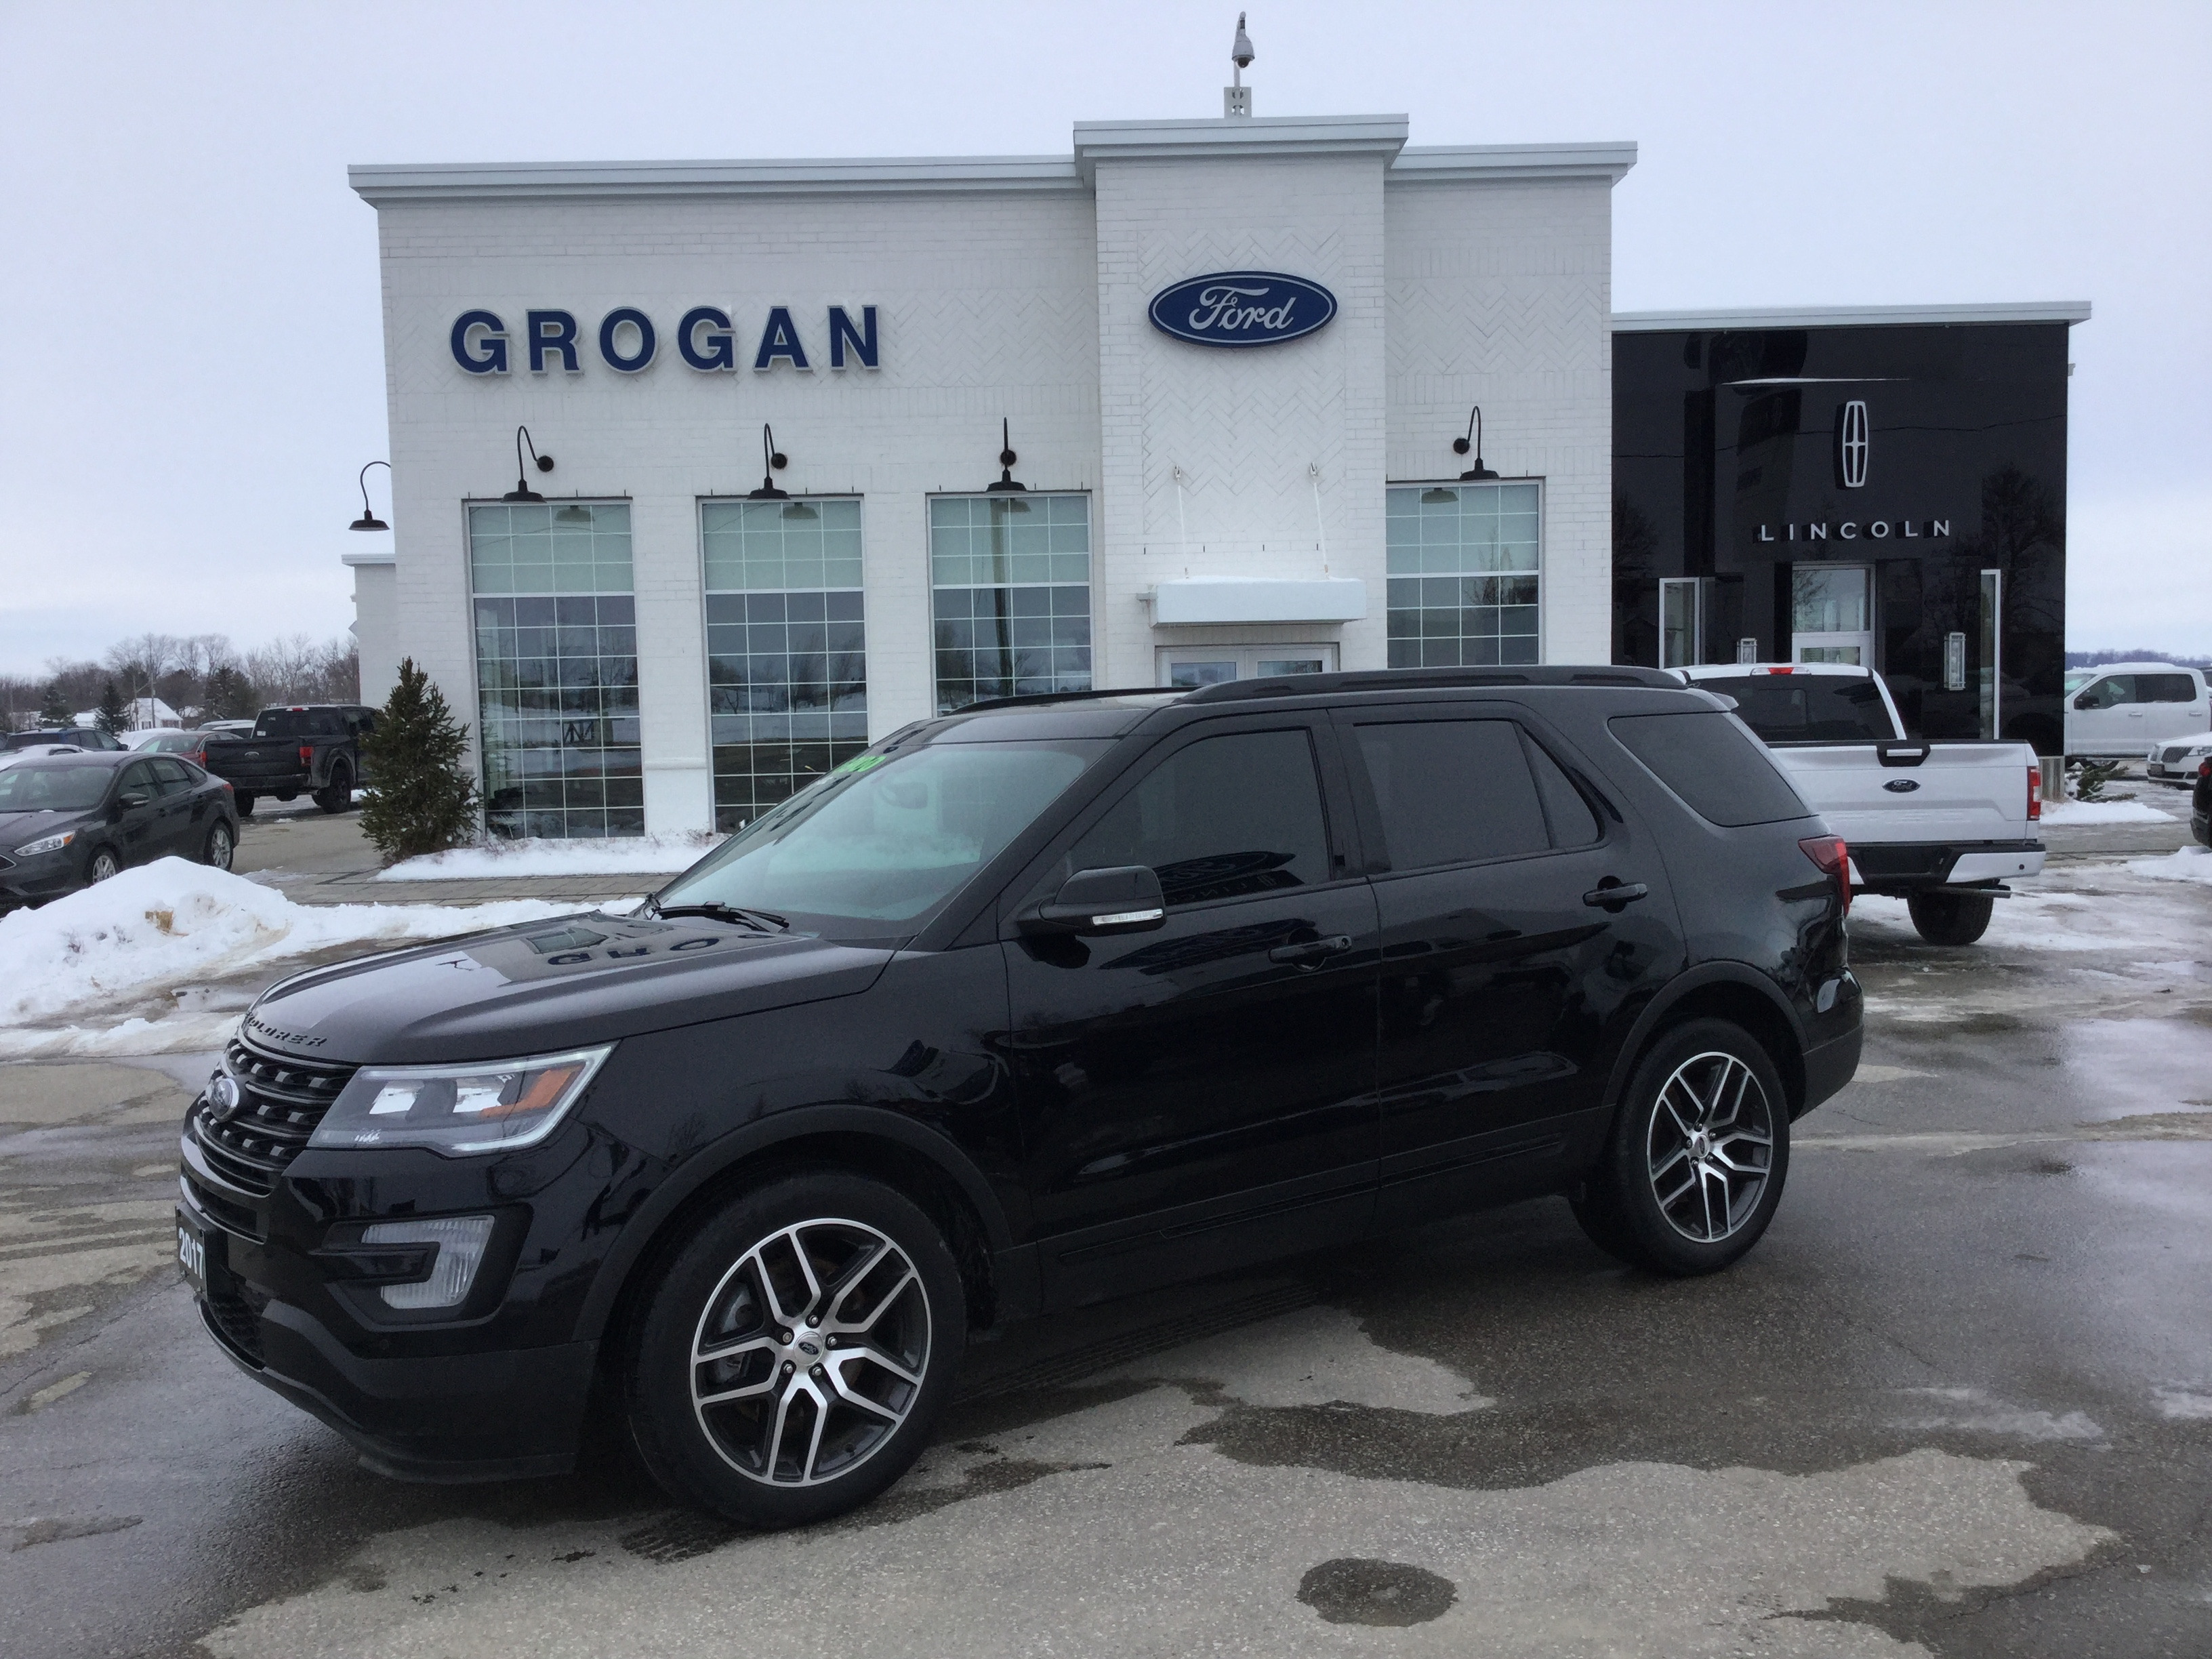 englewood explorer in xlt suv vin ti nj htm engine for ford new sale vct